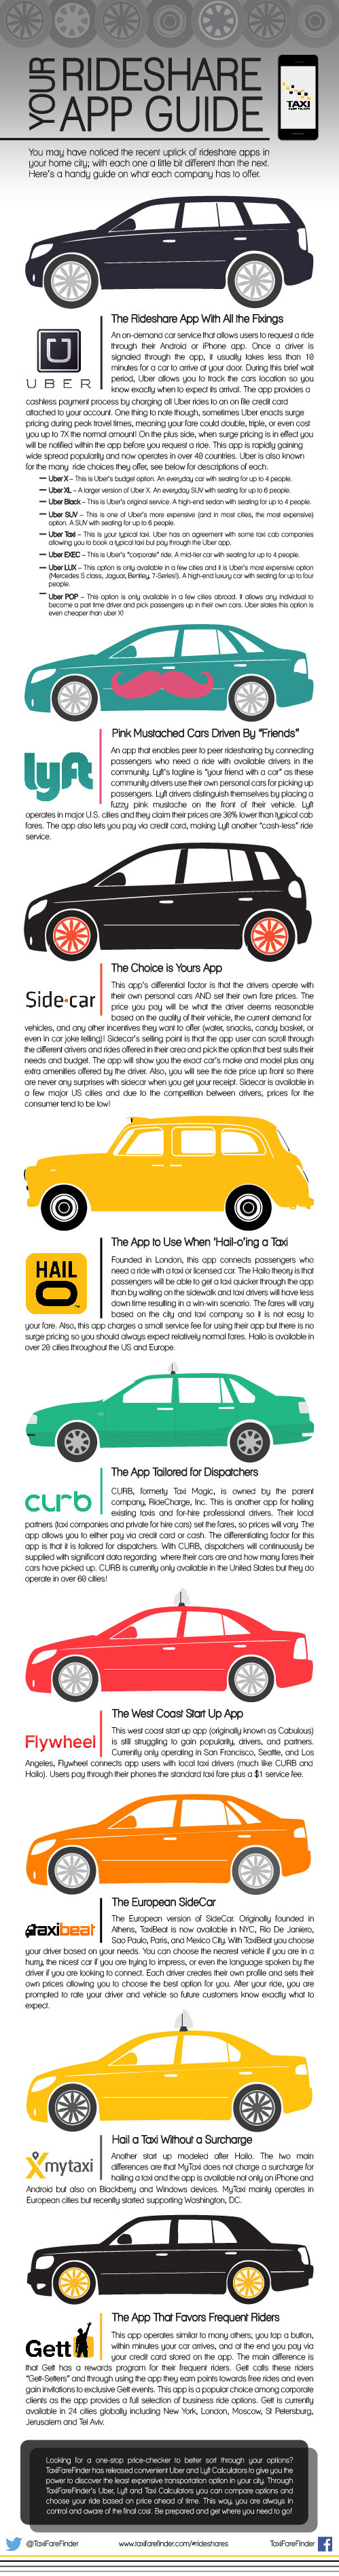 http://www.taxifarefinder.com/newsroom/wp-content/uploads/2014/12/Rideshare-Infographic-120214-01.jpg